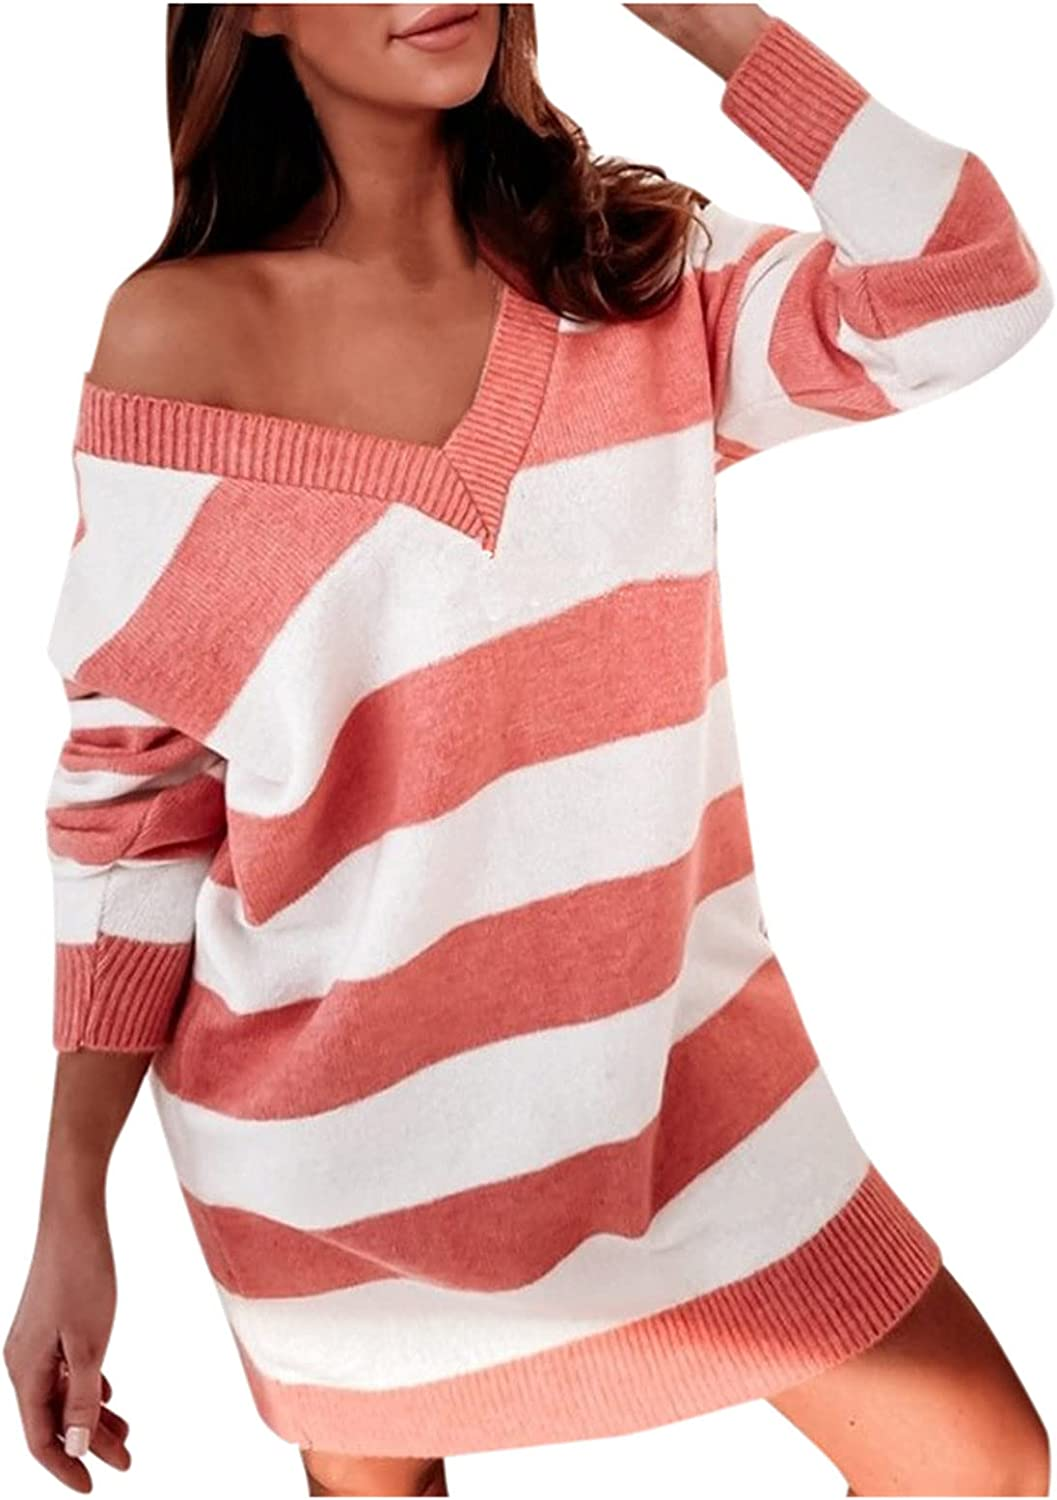 A2A Off Shoulder Sweater for Women V Neck Long Sleeve Hand Knit Striped Sweater Tops Loose Pullover Sweaters Sexy Blouse